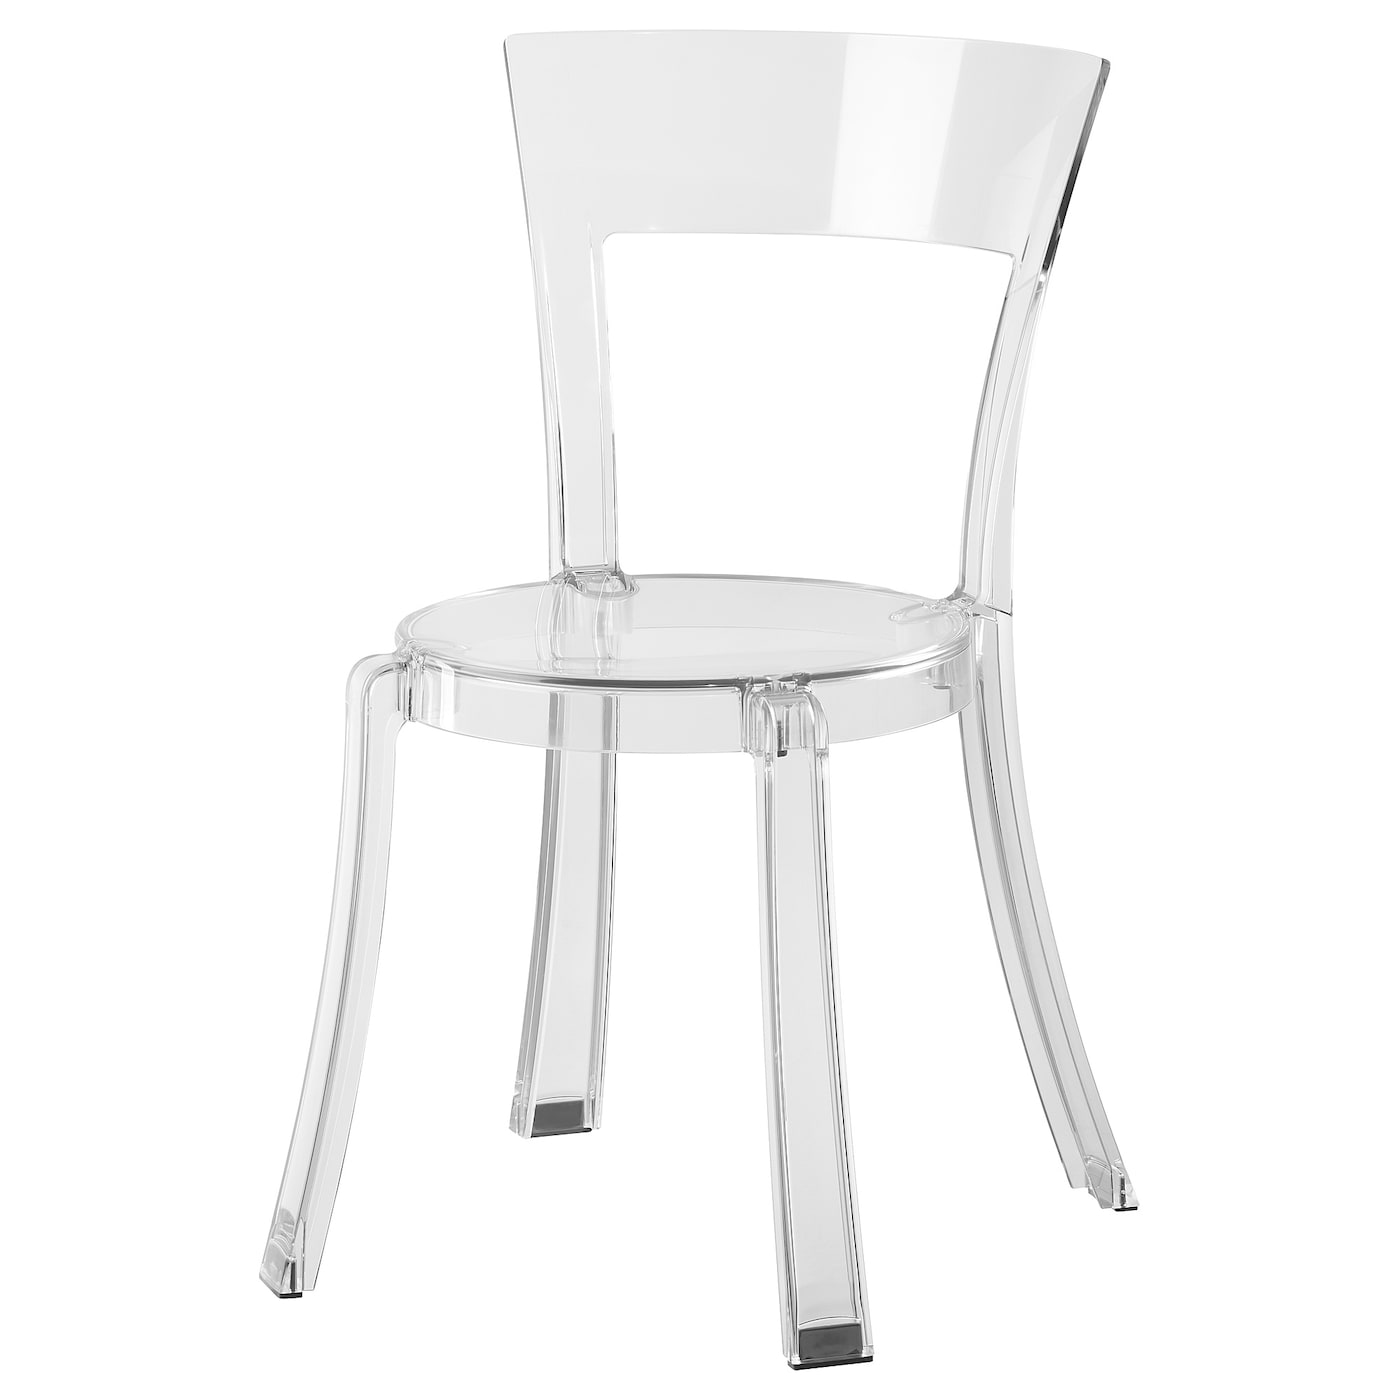 Best Picture Ikea Glass Chair